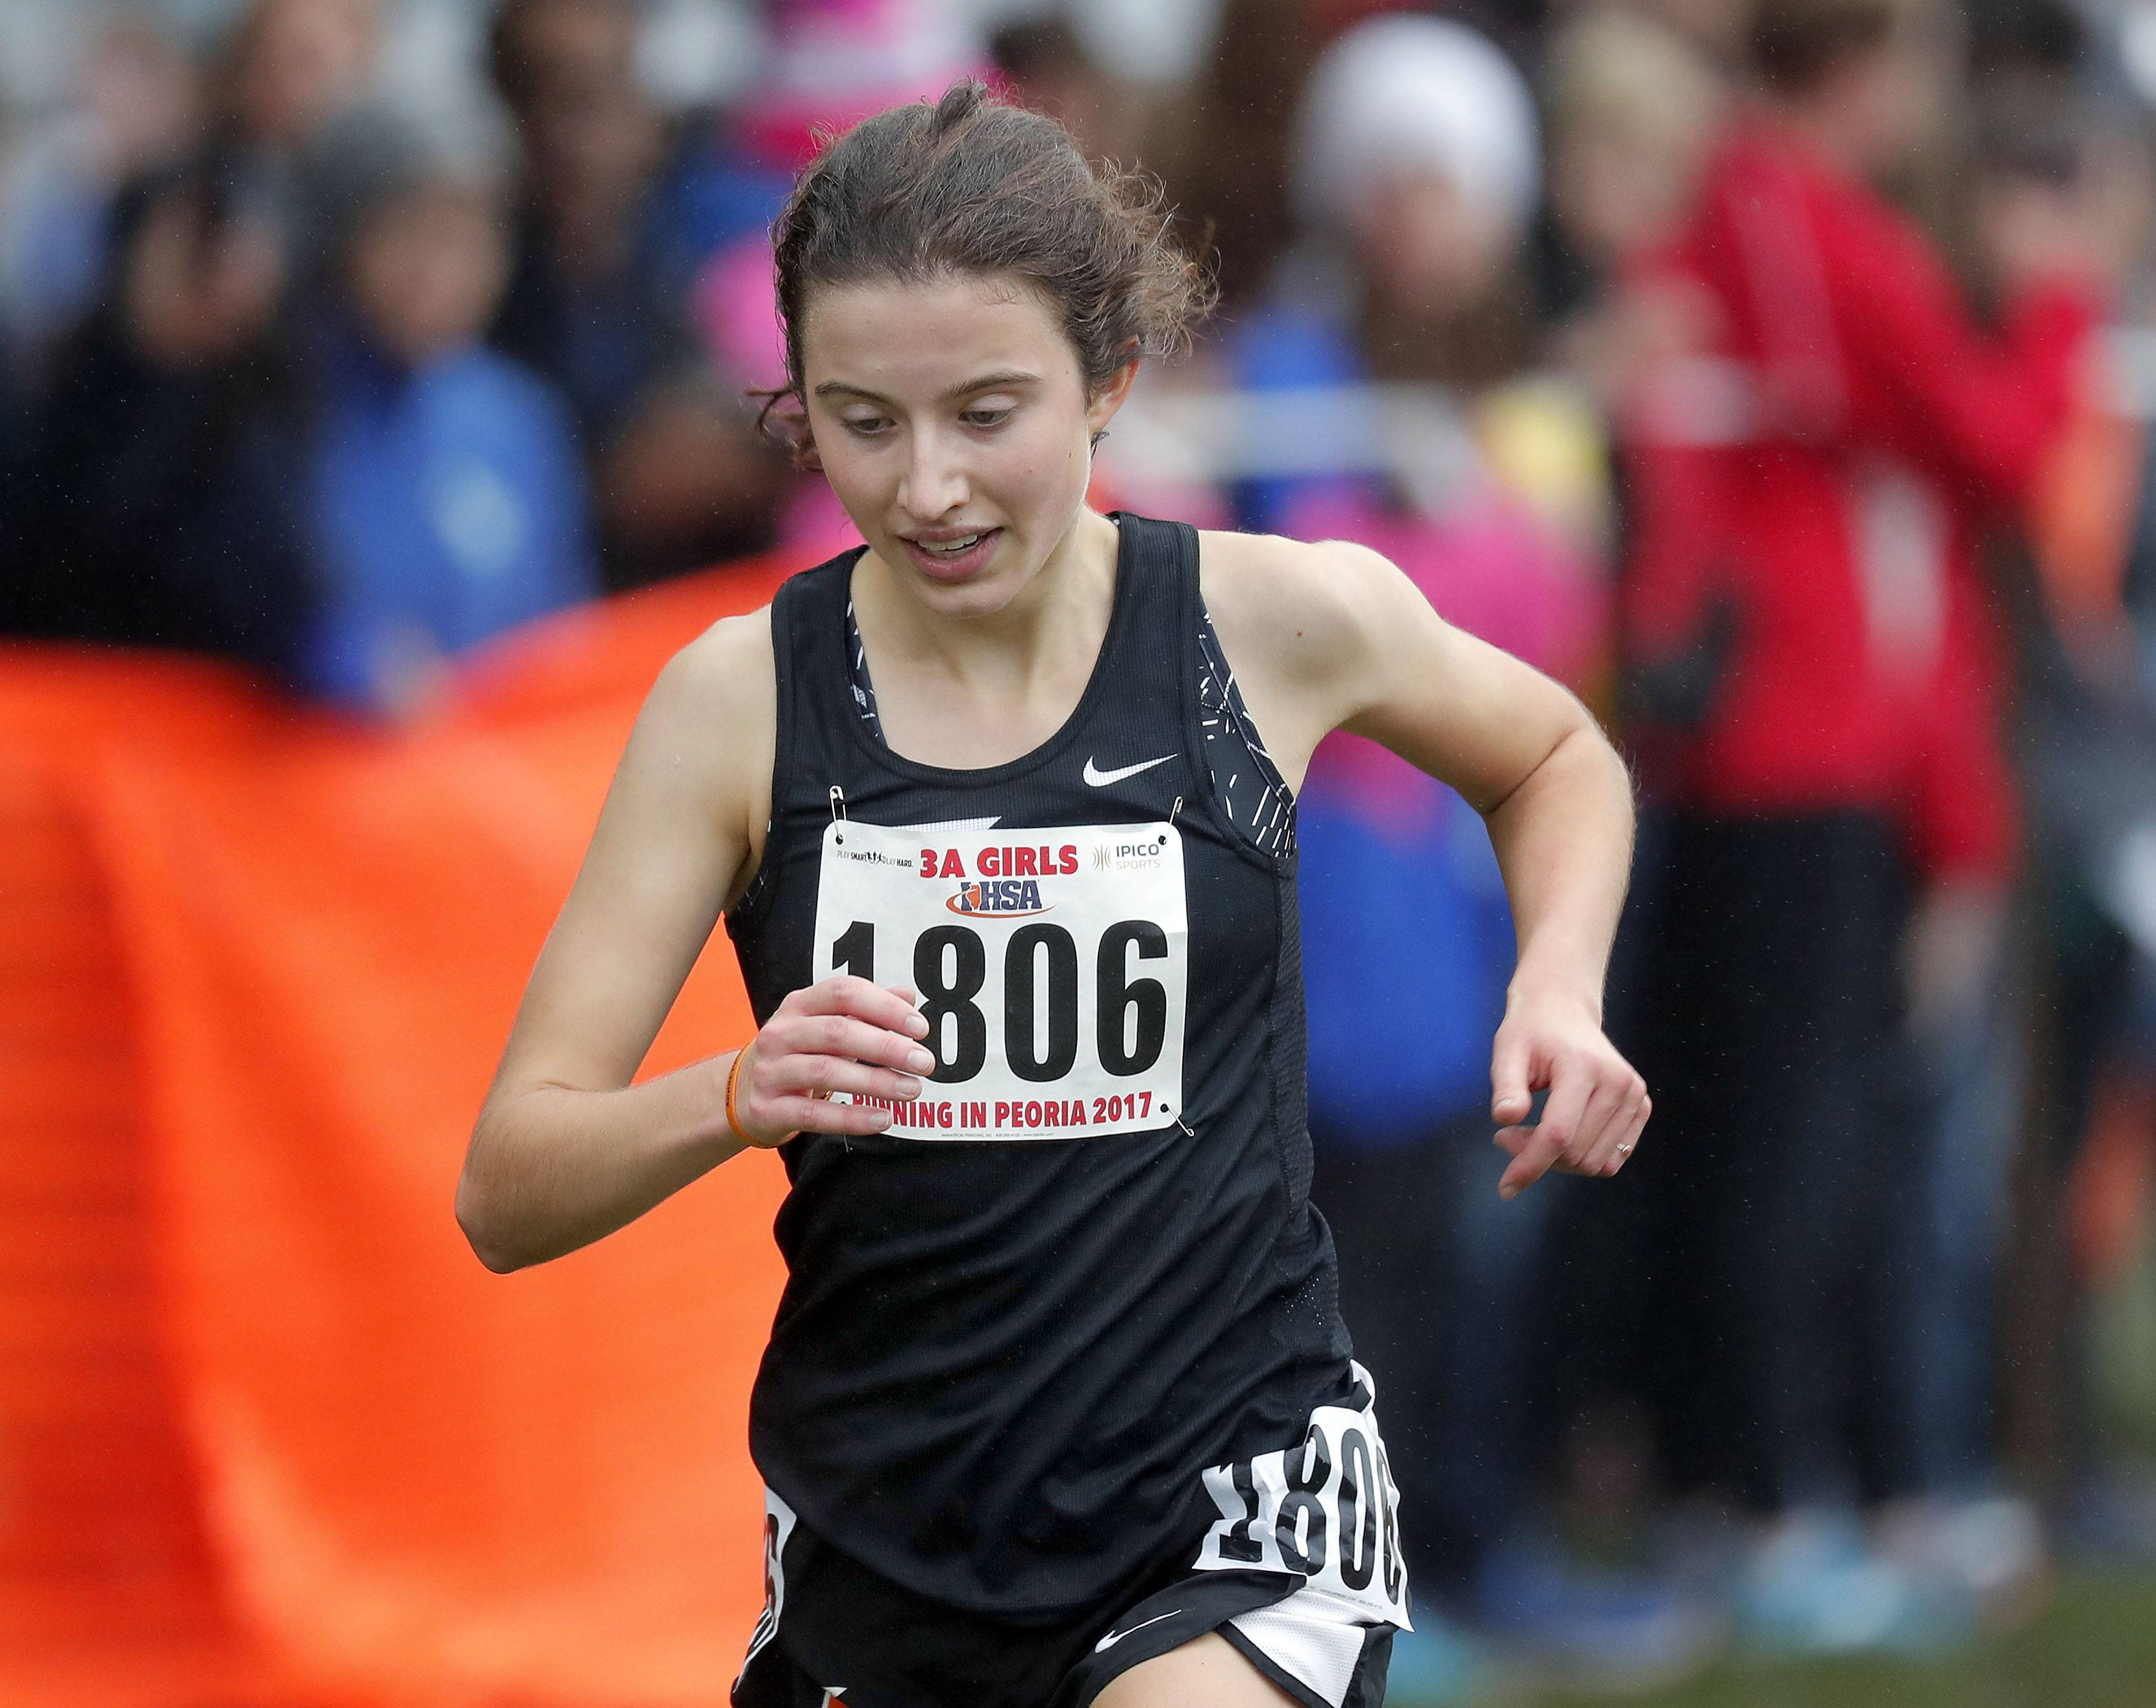 Libertyville's Melissa Manetsch (1806) heads to the finish during the Class 3A girls cross country finals Saturday in Peoria.